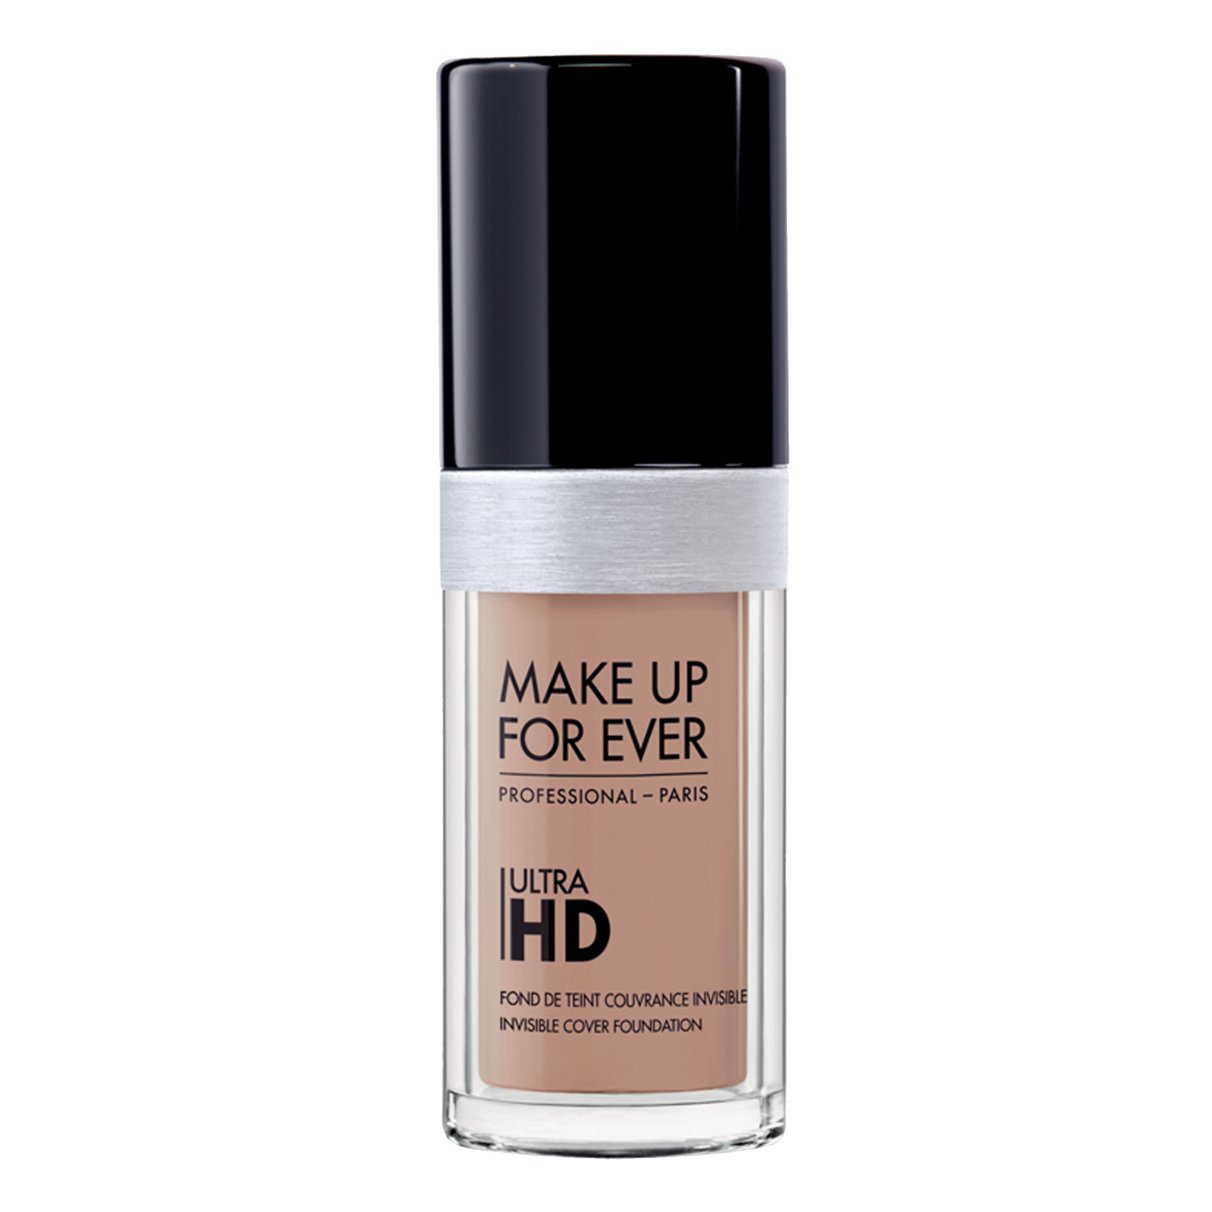 Foundation Ultra Hd Fluid Foundation Ultra Hd, 135-R300 VANILLA , Authentic 100% From Paris France (Smooth, Oil Free , Cover Ance Dark Spot , Brightening) 30ml